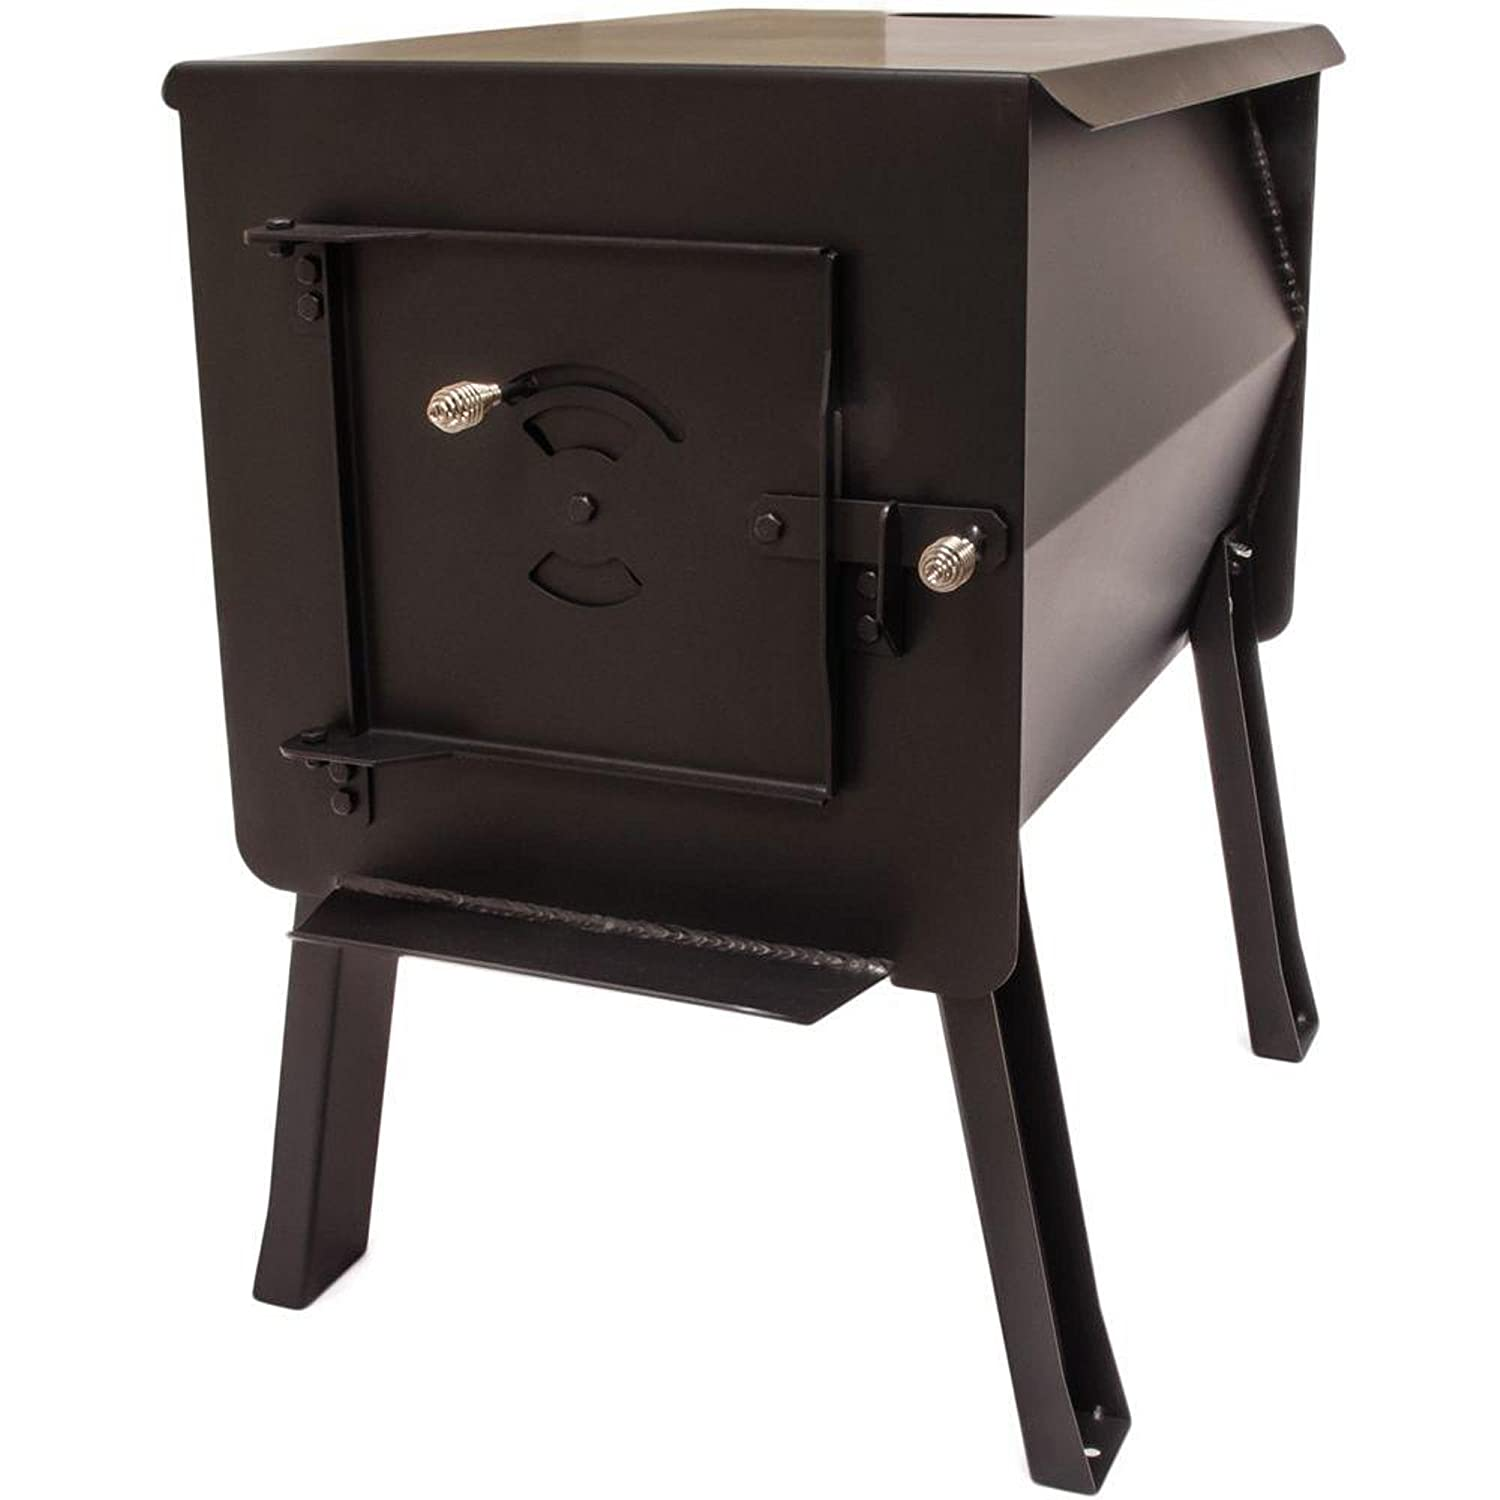 "England's Stove WorksSurvivor 12-CSL""Grizzly"" Portable Camp/Cook Wood Stove 2.7 Cubic Feet"